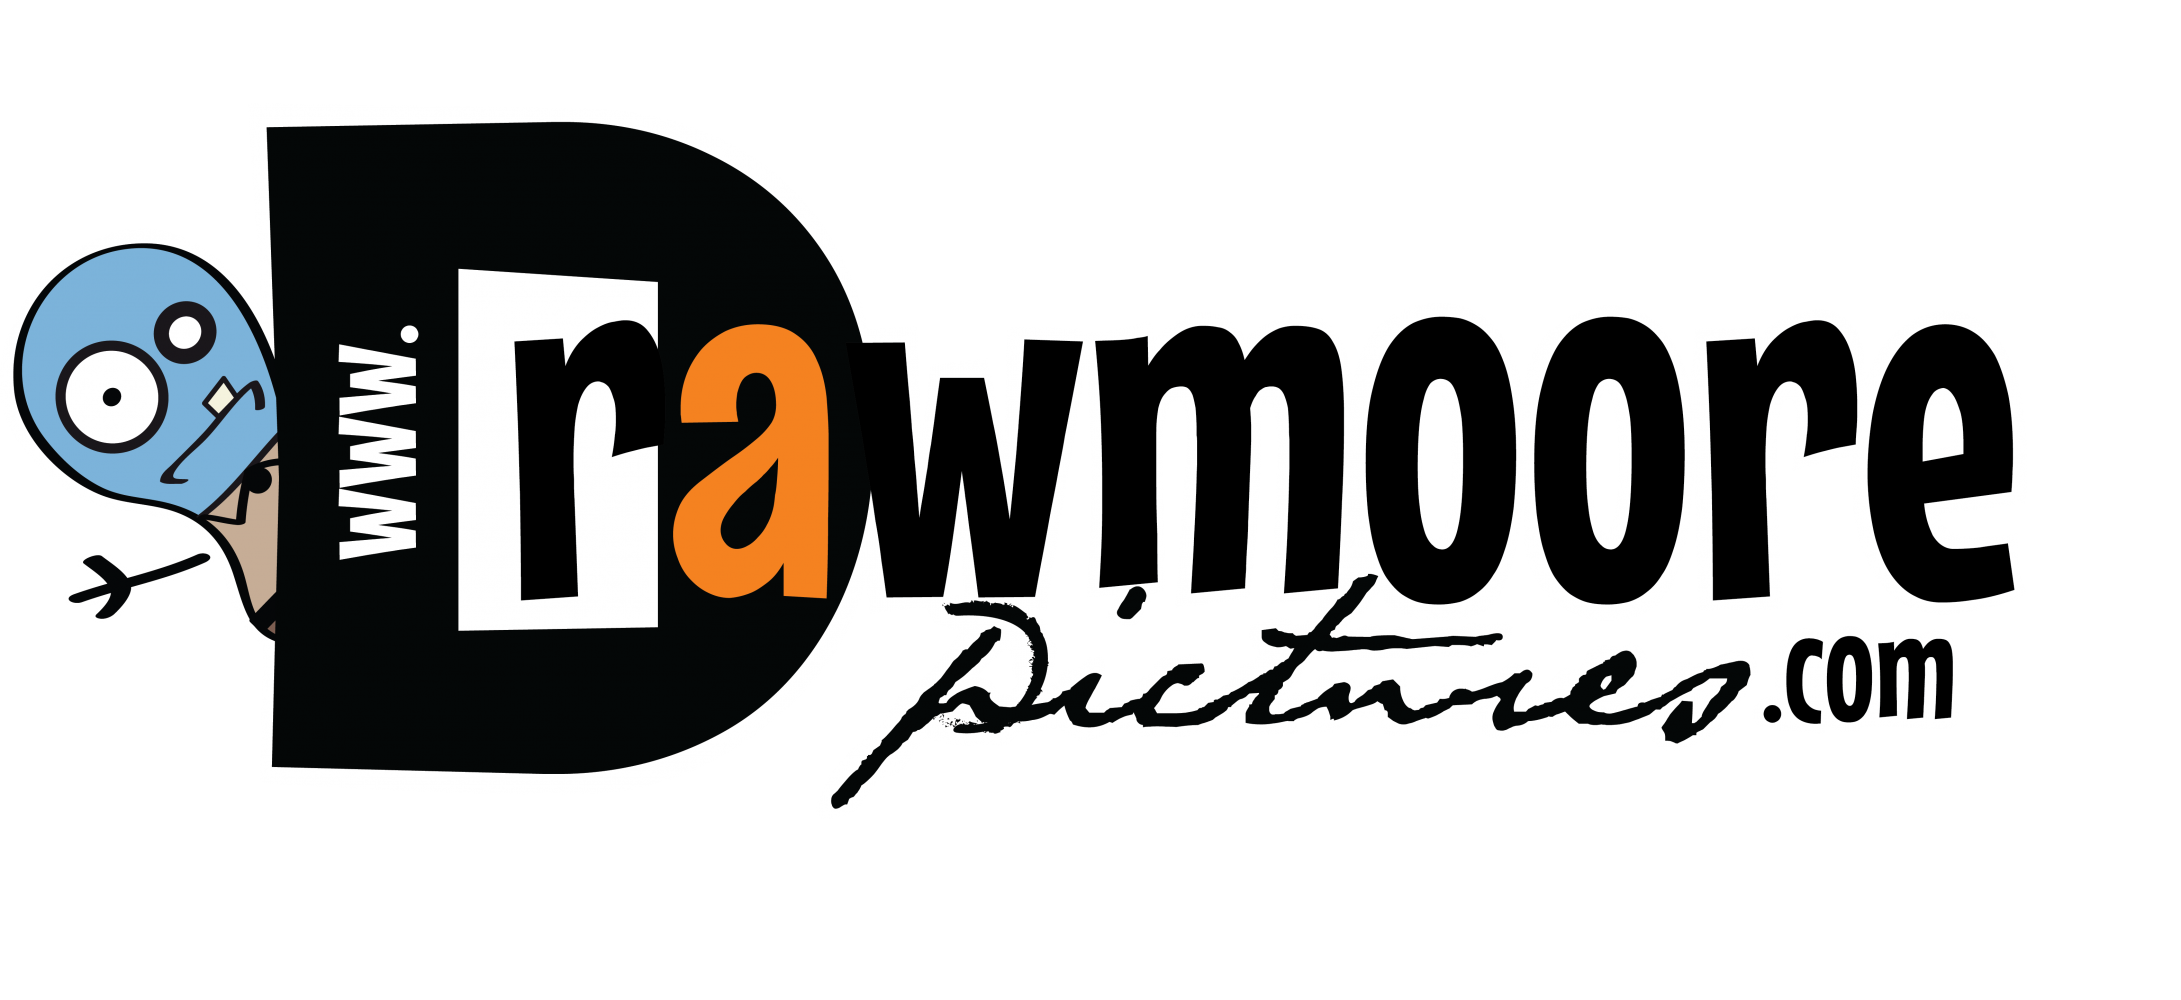 Drawmoore Pictures logo